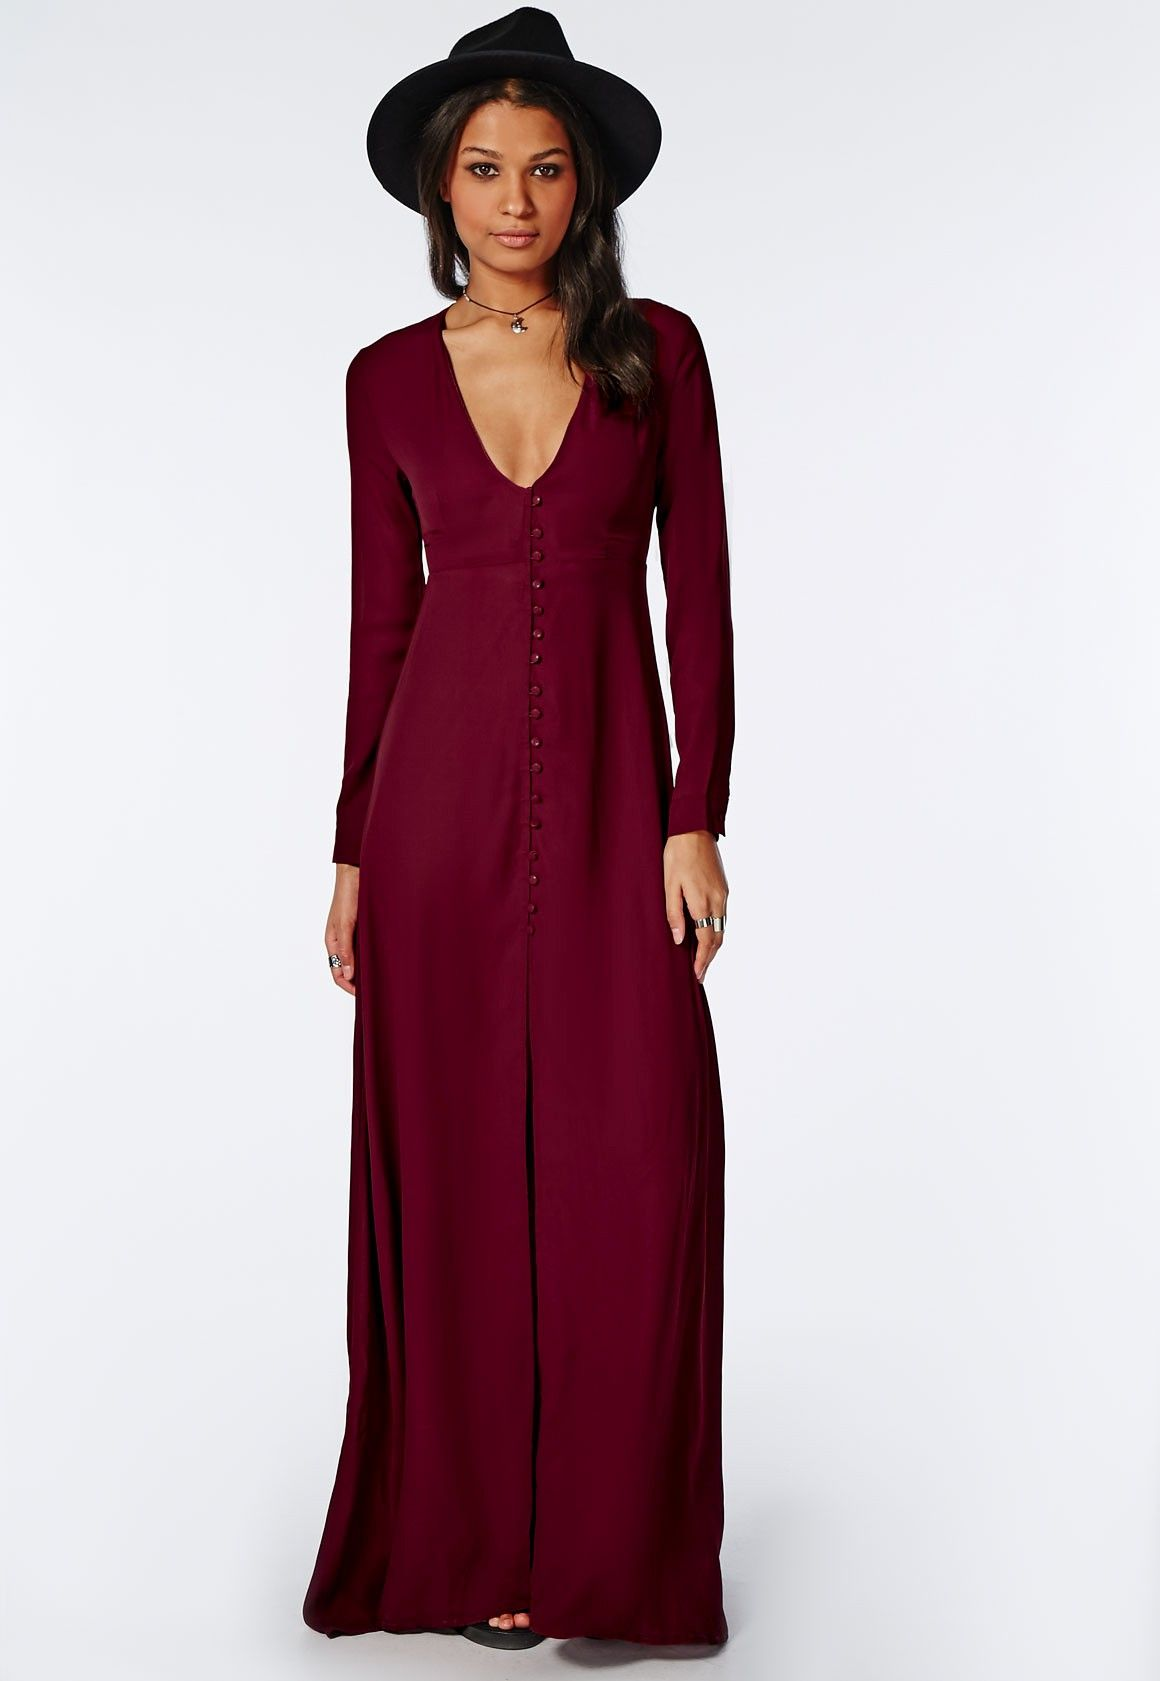 891c930458b Effie Long Sleeve Maxi Dress Burgundy - Dresses - Maxi Dresses - Missguided